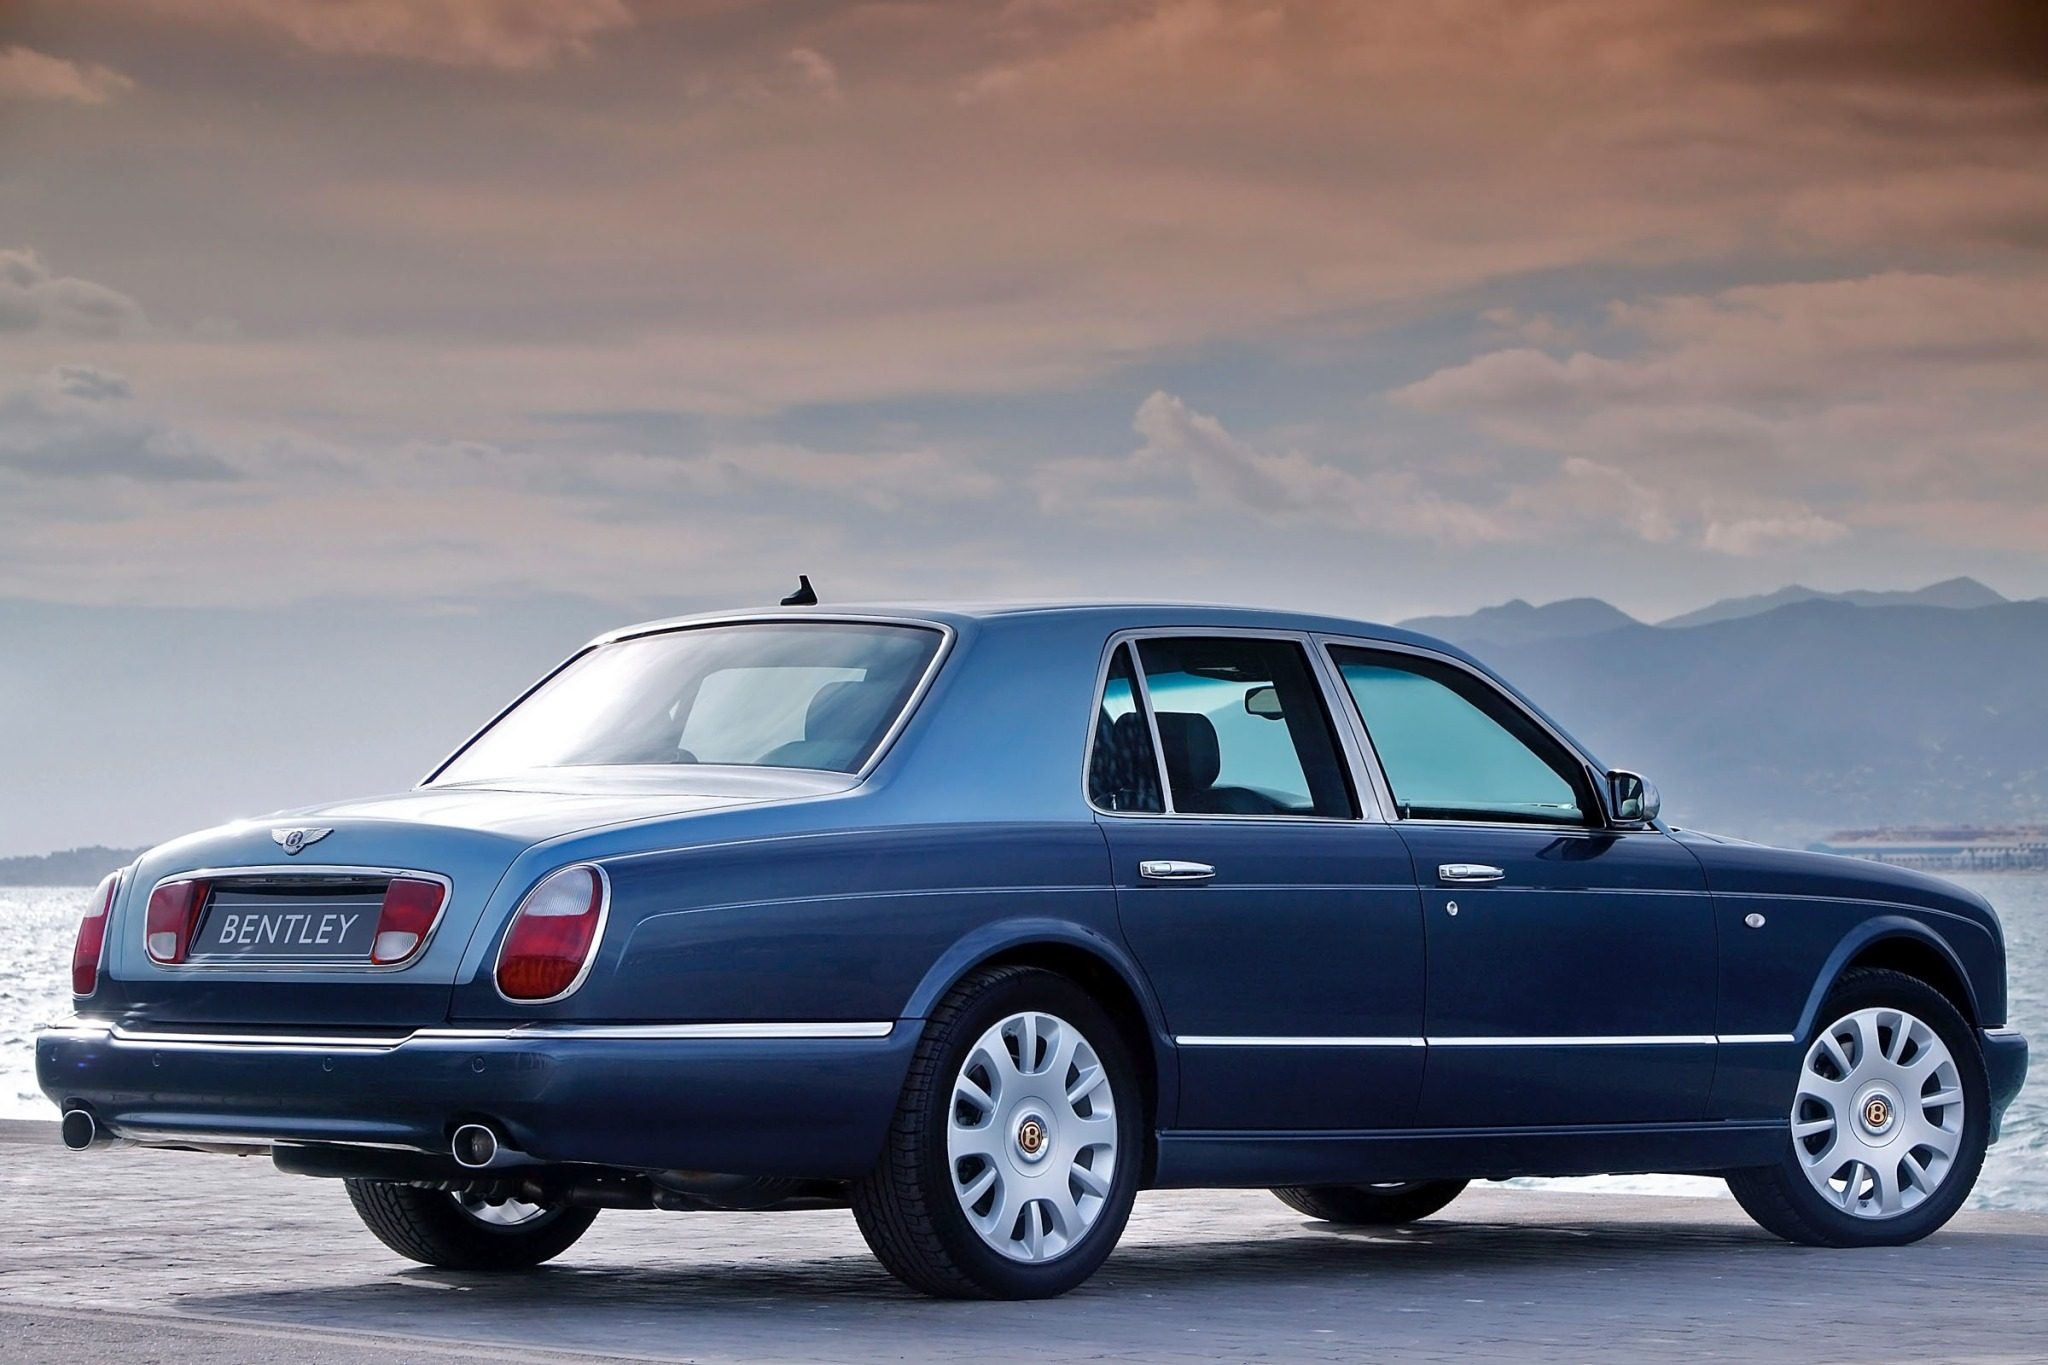 2007 Bentley Arnage R Sed exterior #4